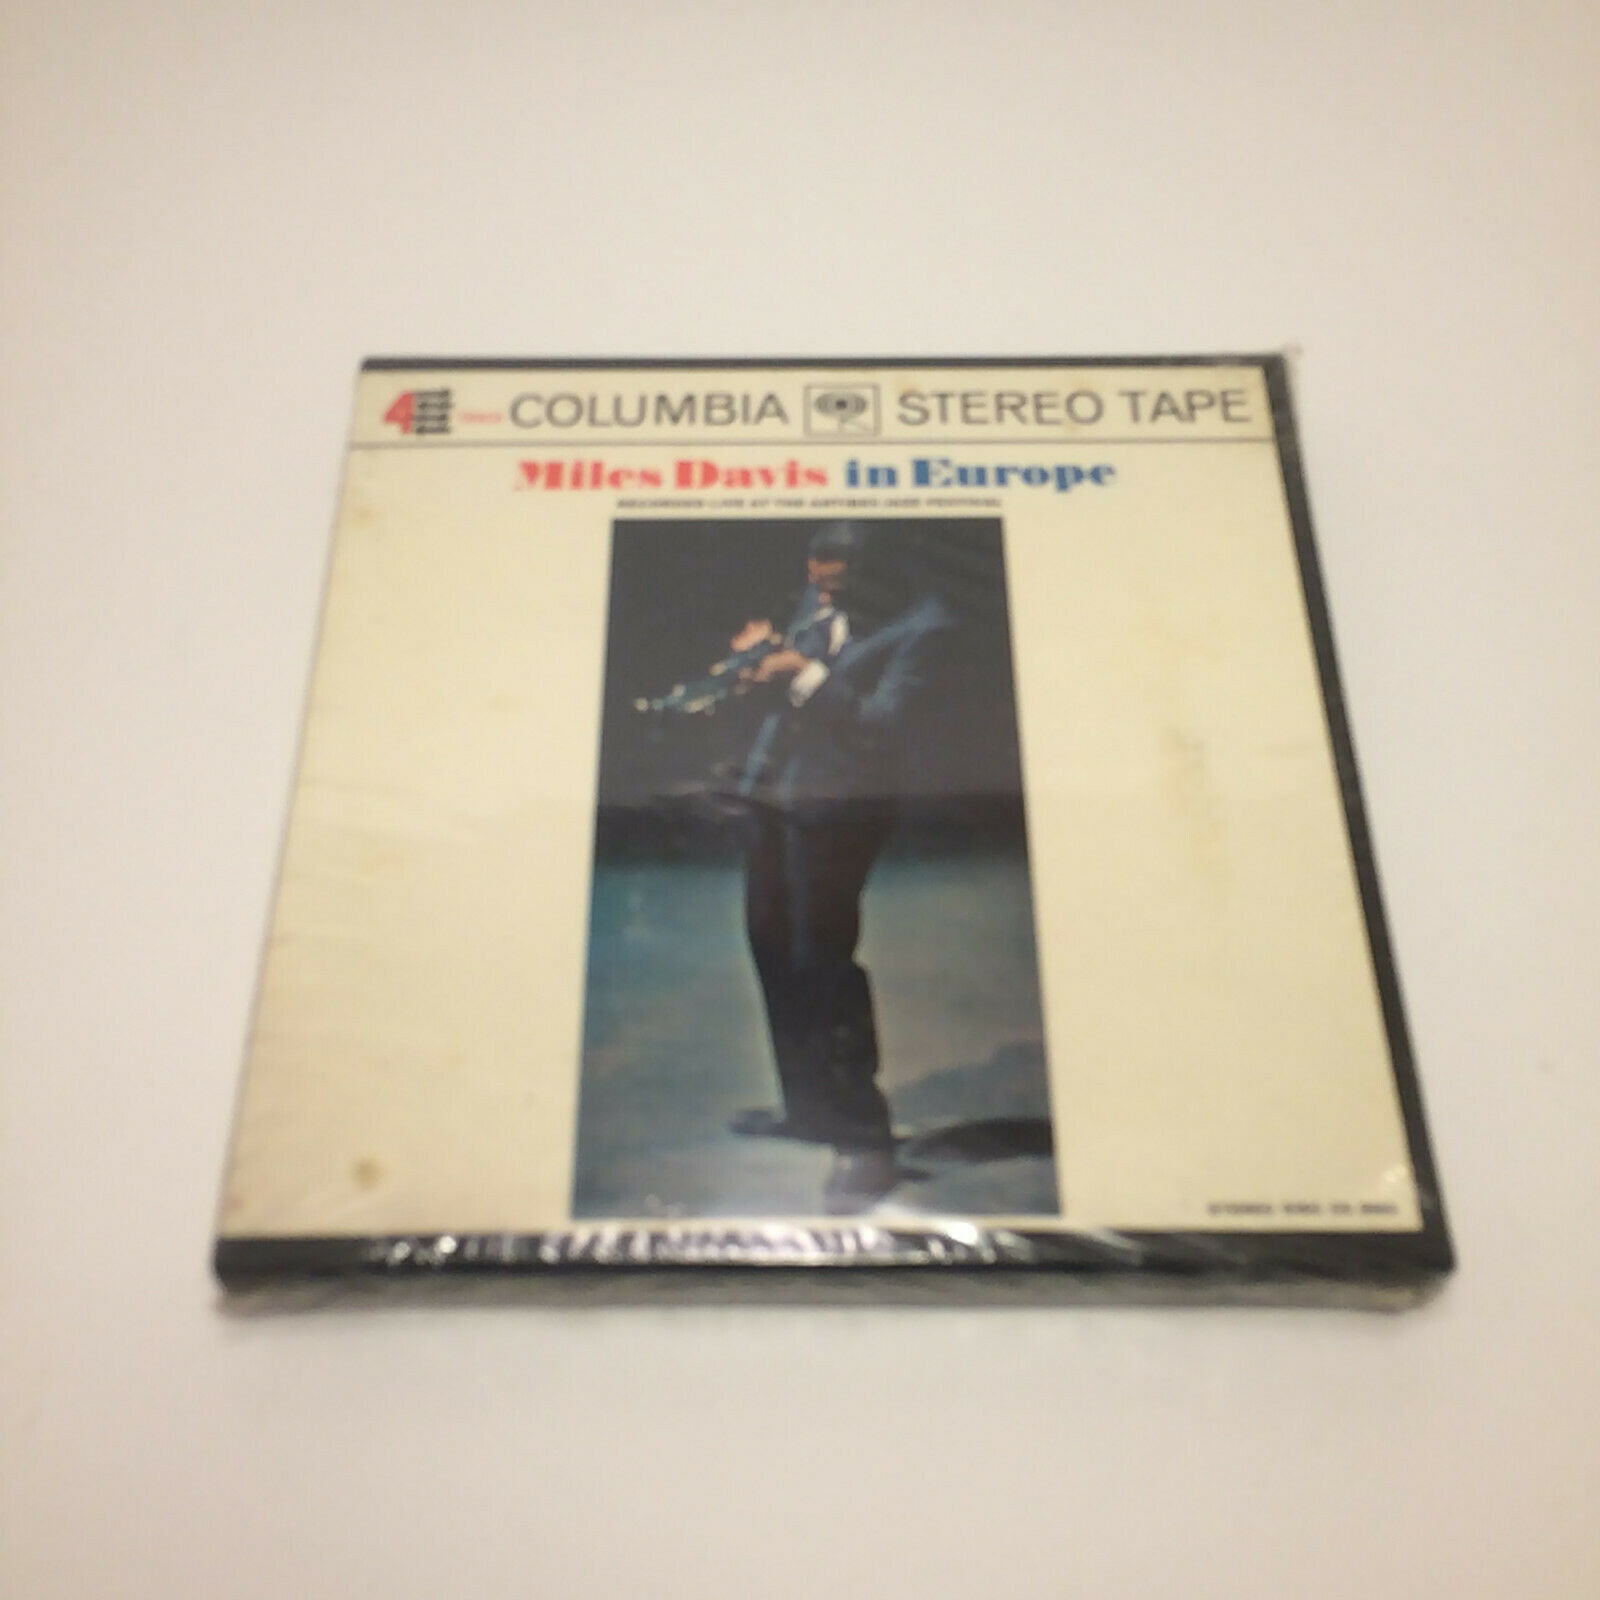 Miles Davis Miles Davis In Europe CQ645 Reel To Reel 7 1/2 IPS New Sealed